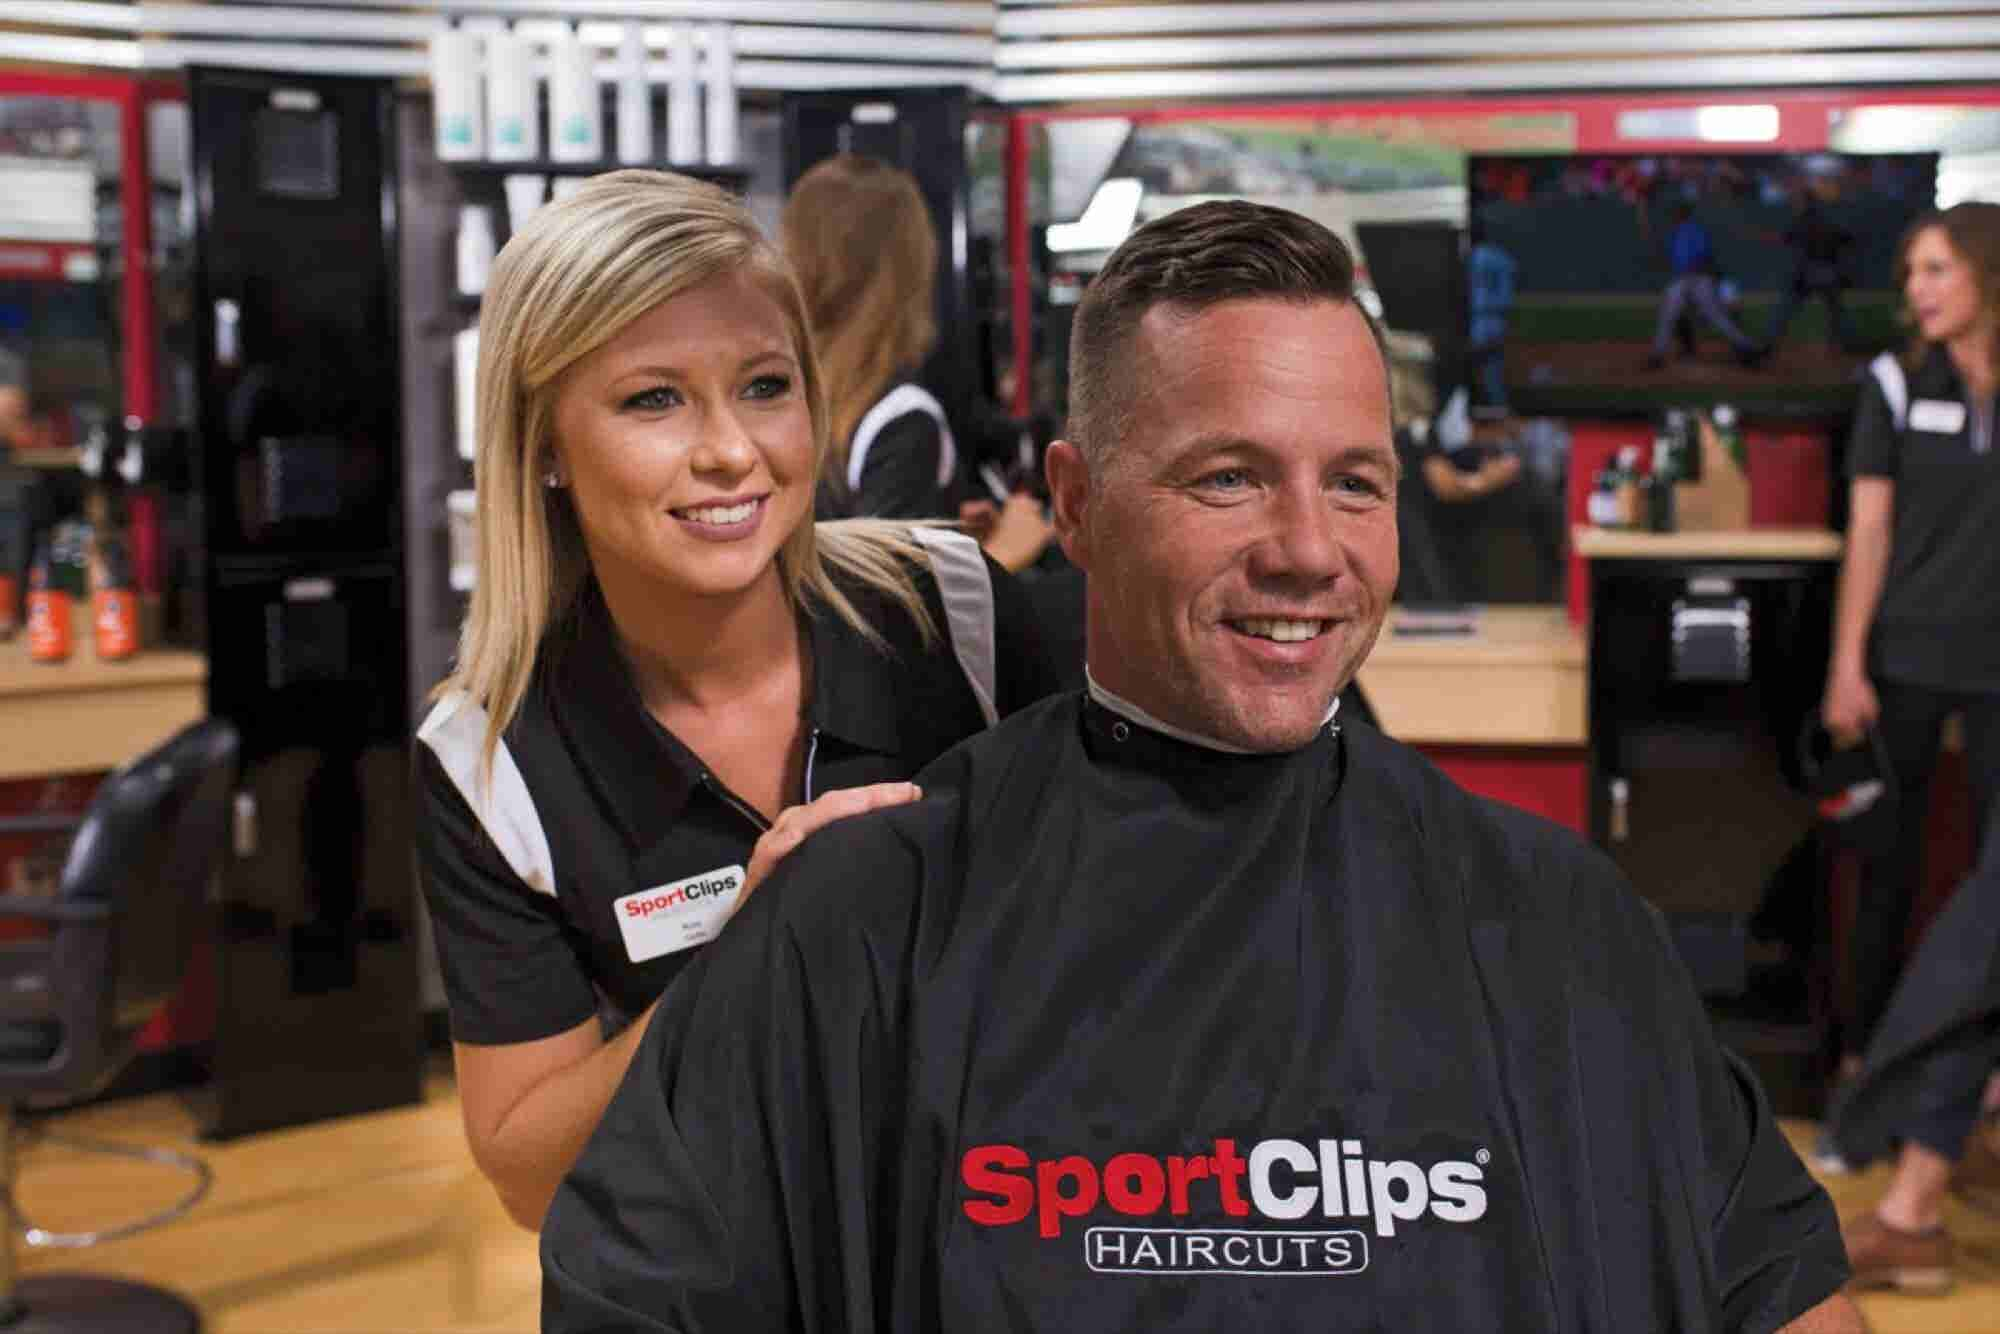 To Compete Against Other Salons, Sport Clips Made It Easier for Franch...